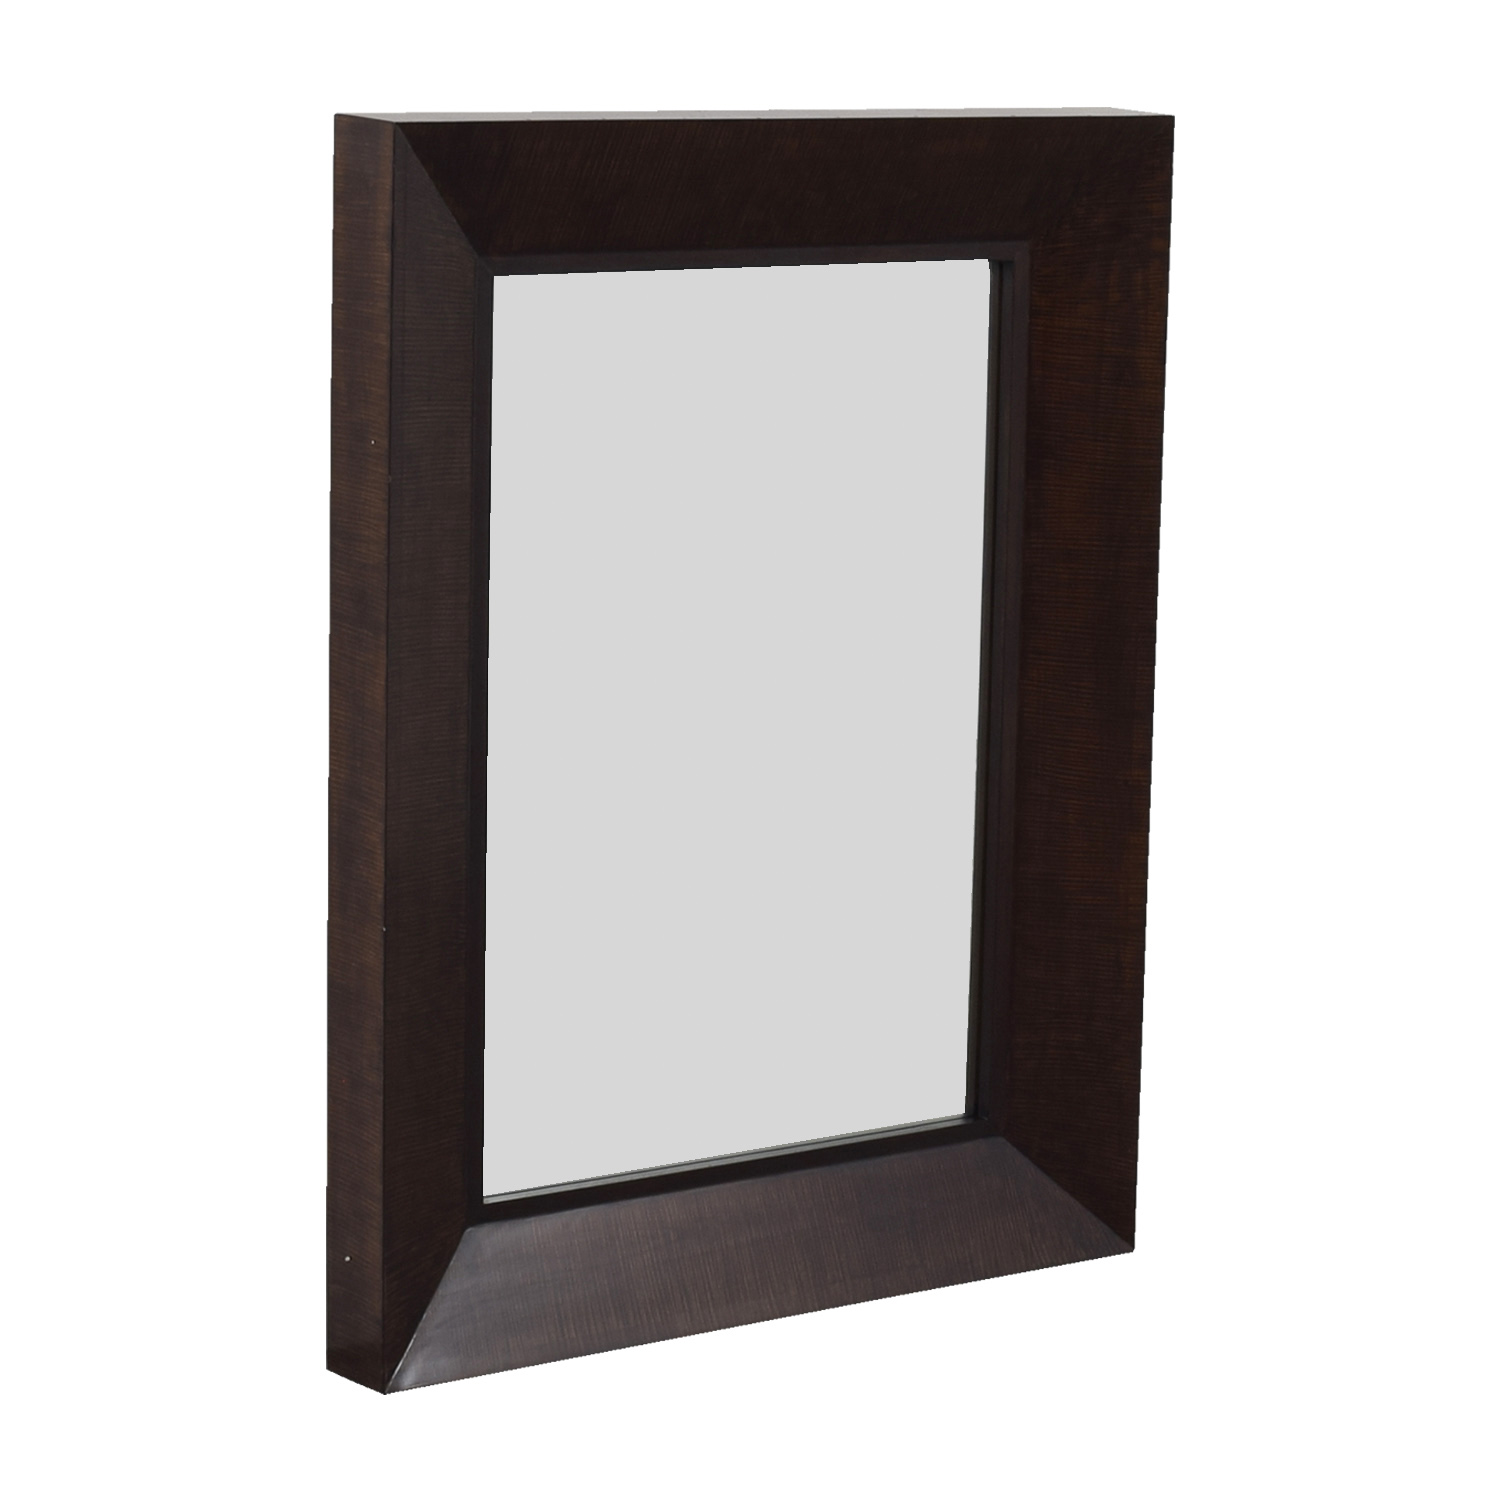 84% OFF - Kreiss Kreiss Wood Framed Mirror / Decor